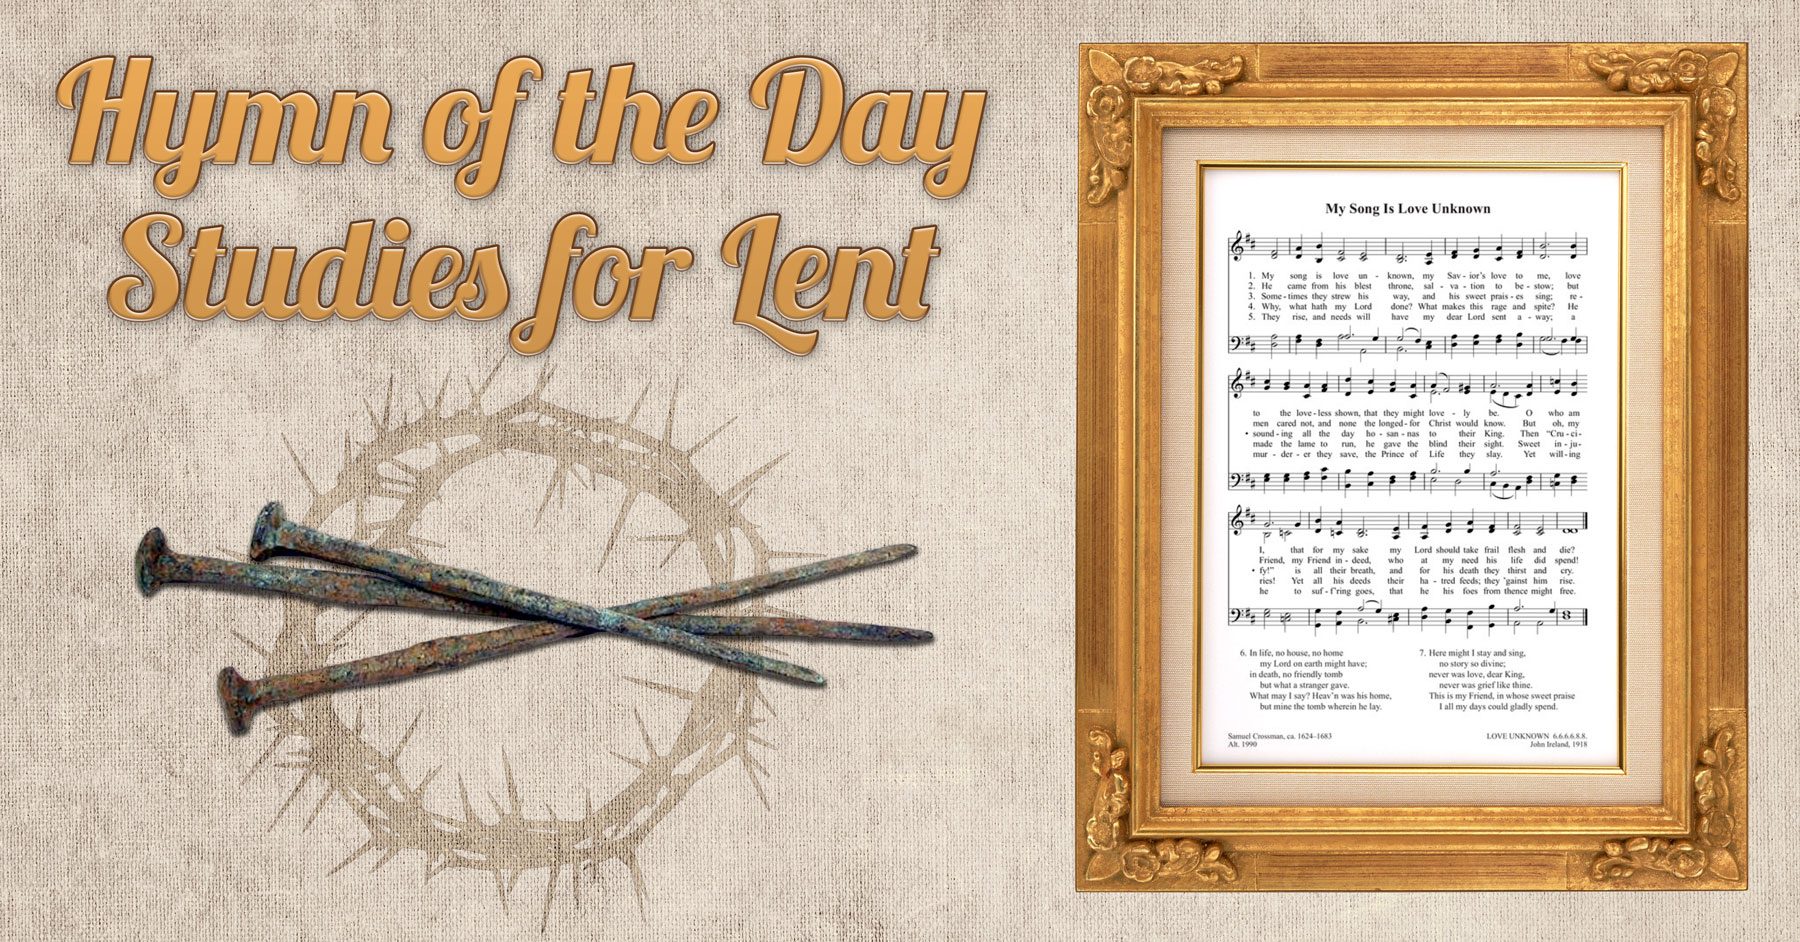 Lenten-Hymn-of-the-Day-430.jpg